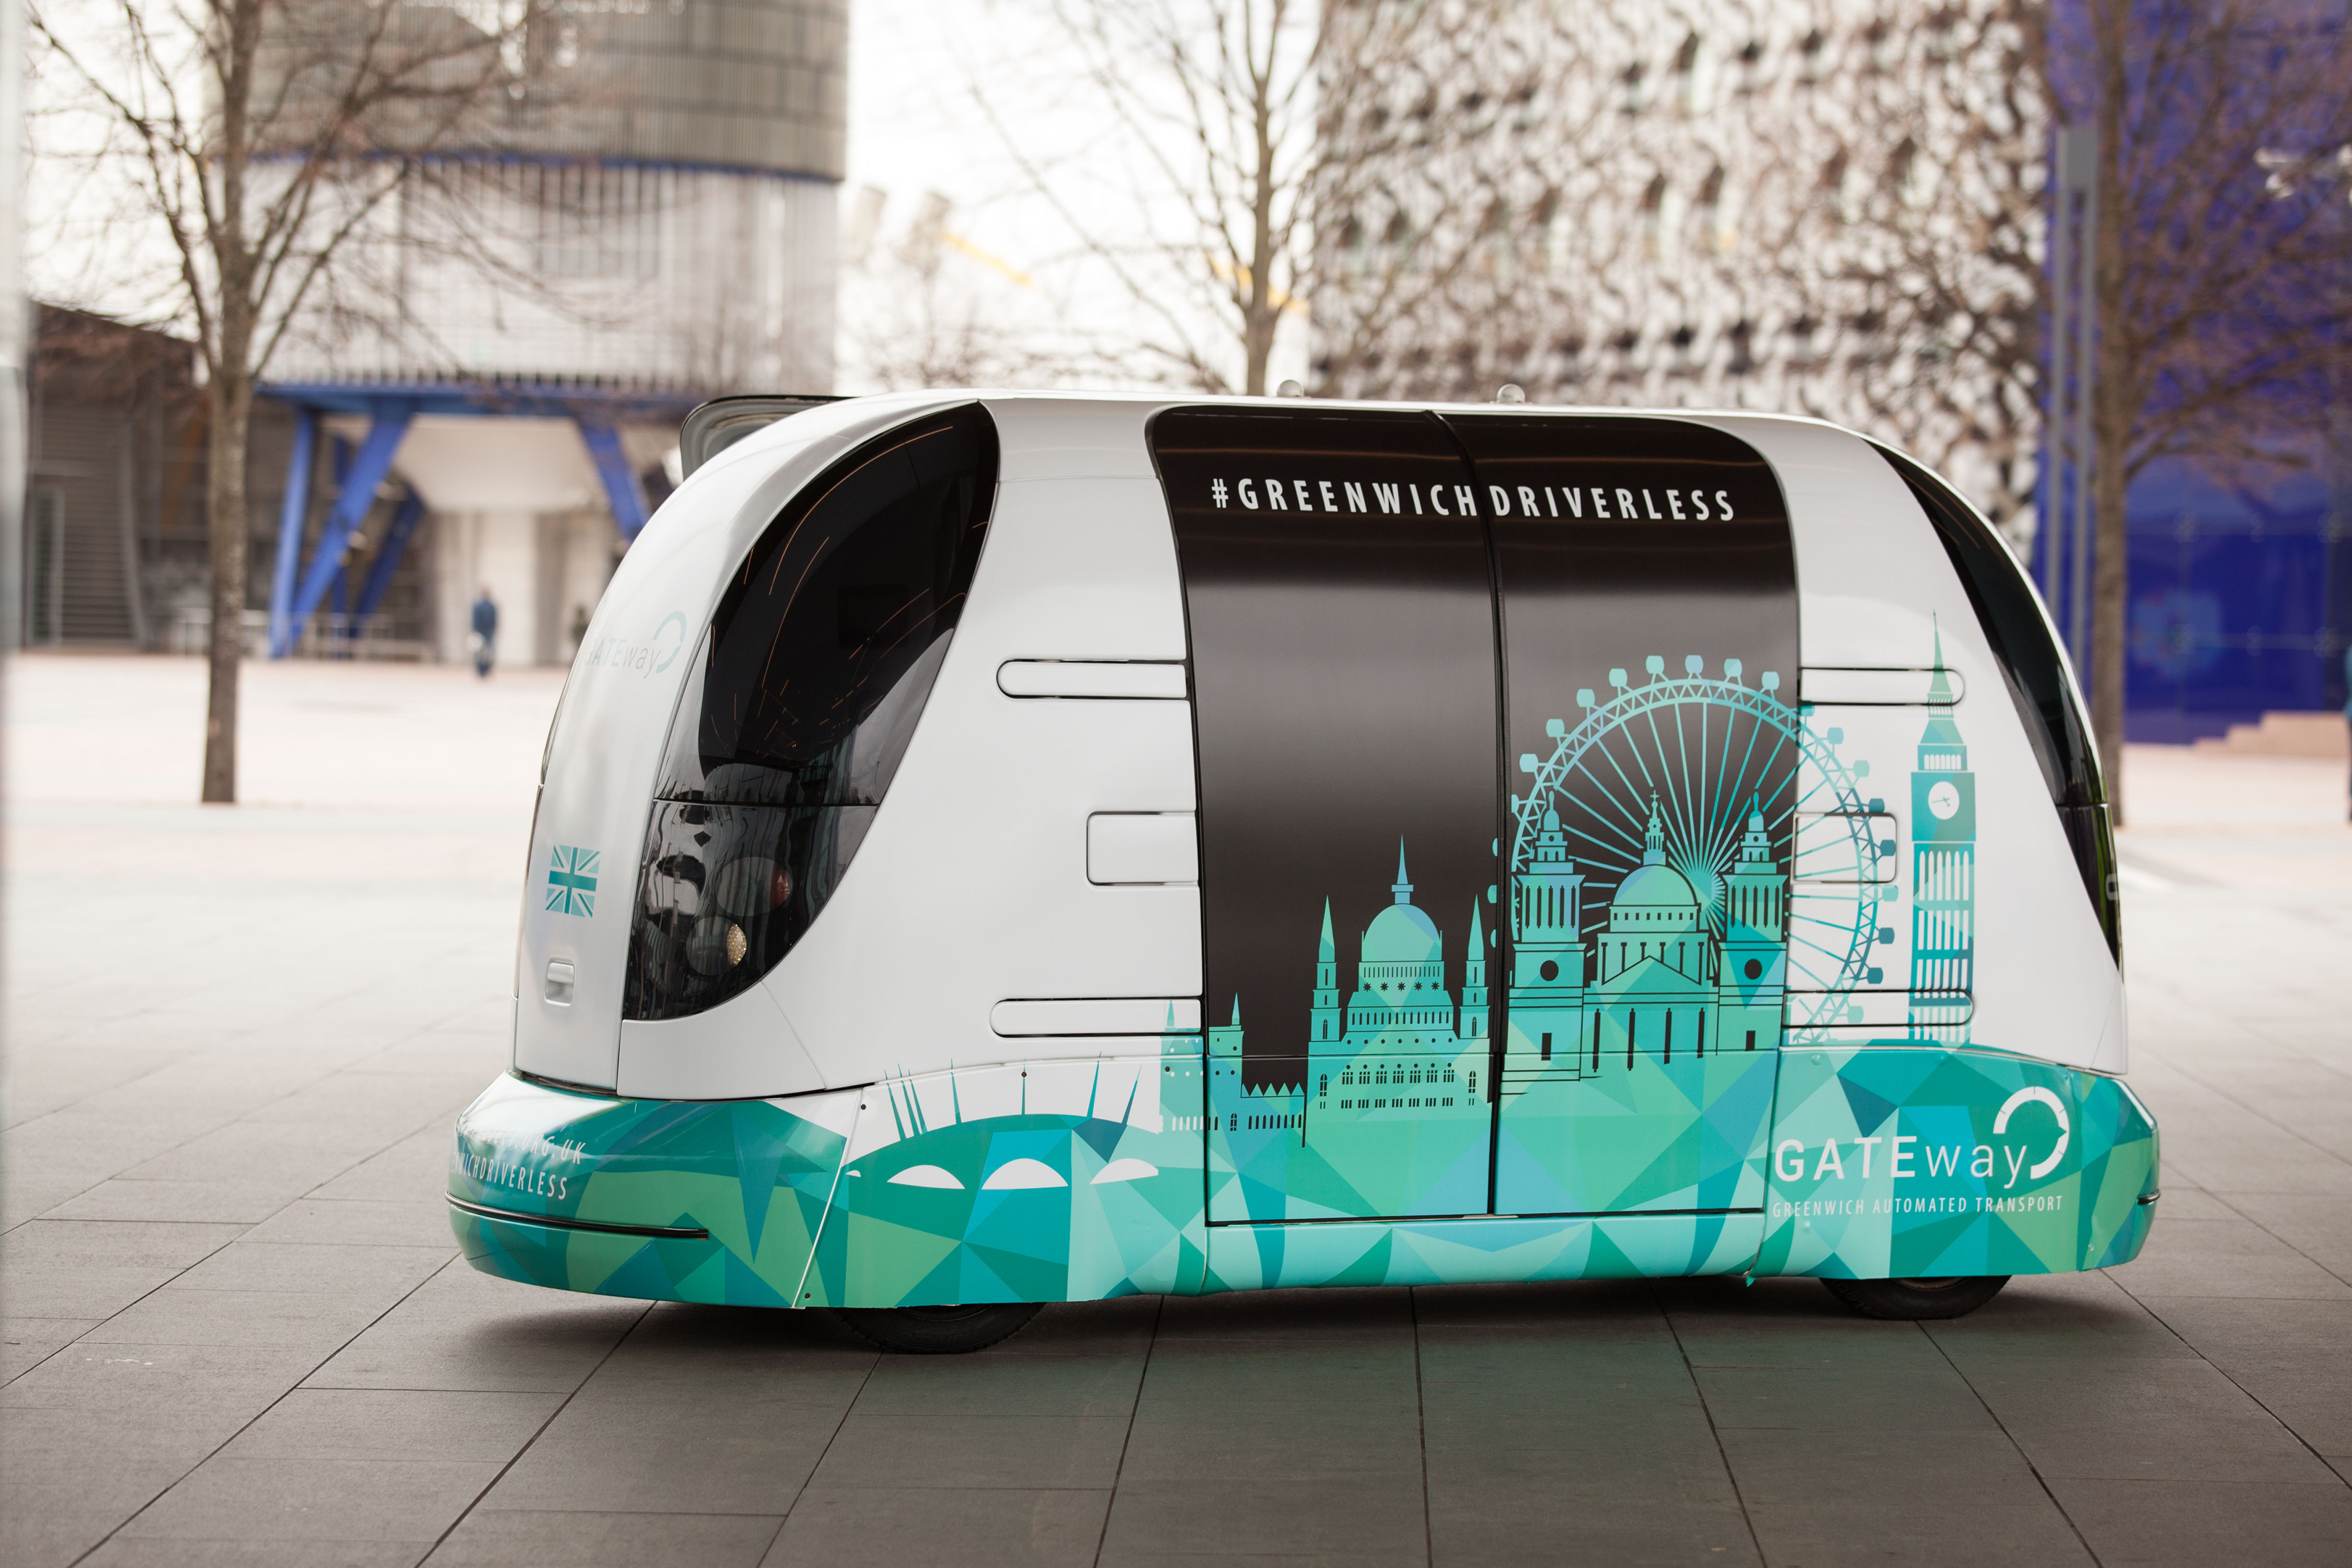 Gateway driverless vehicle